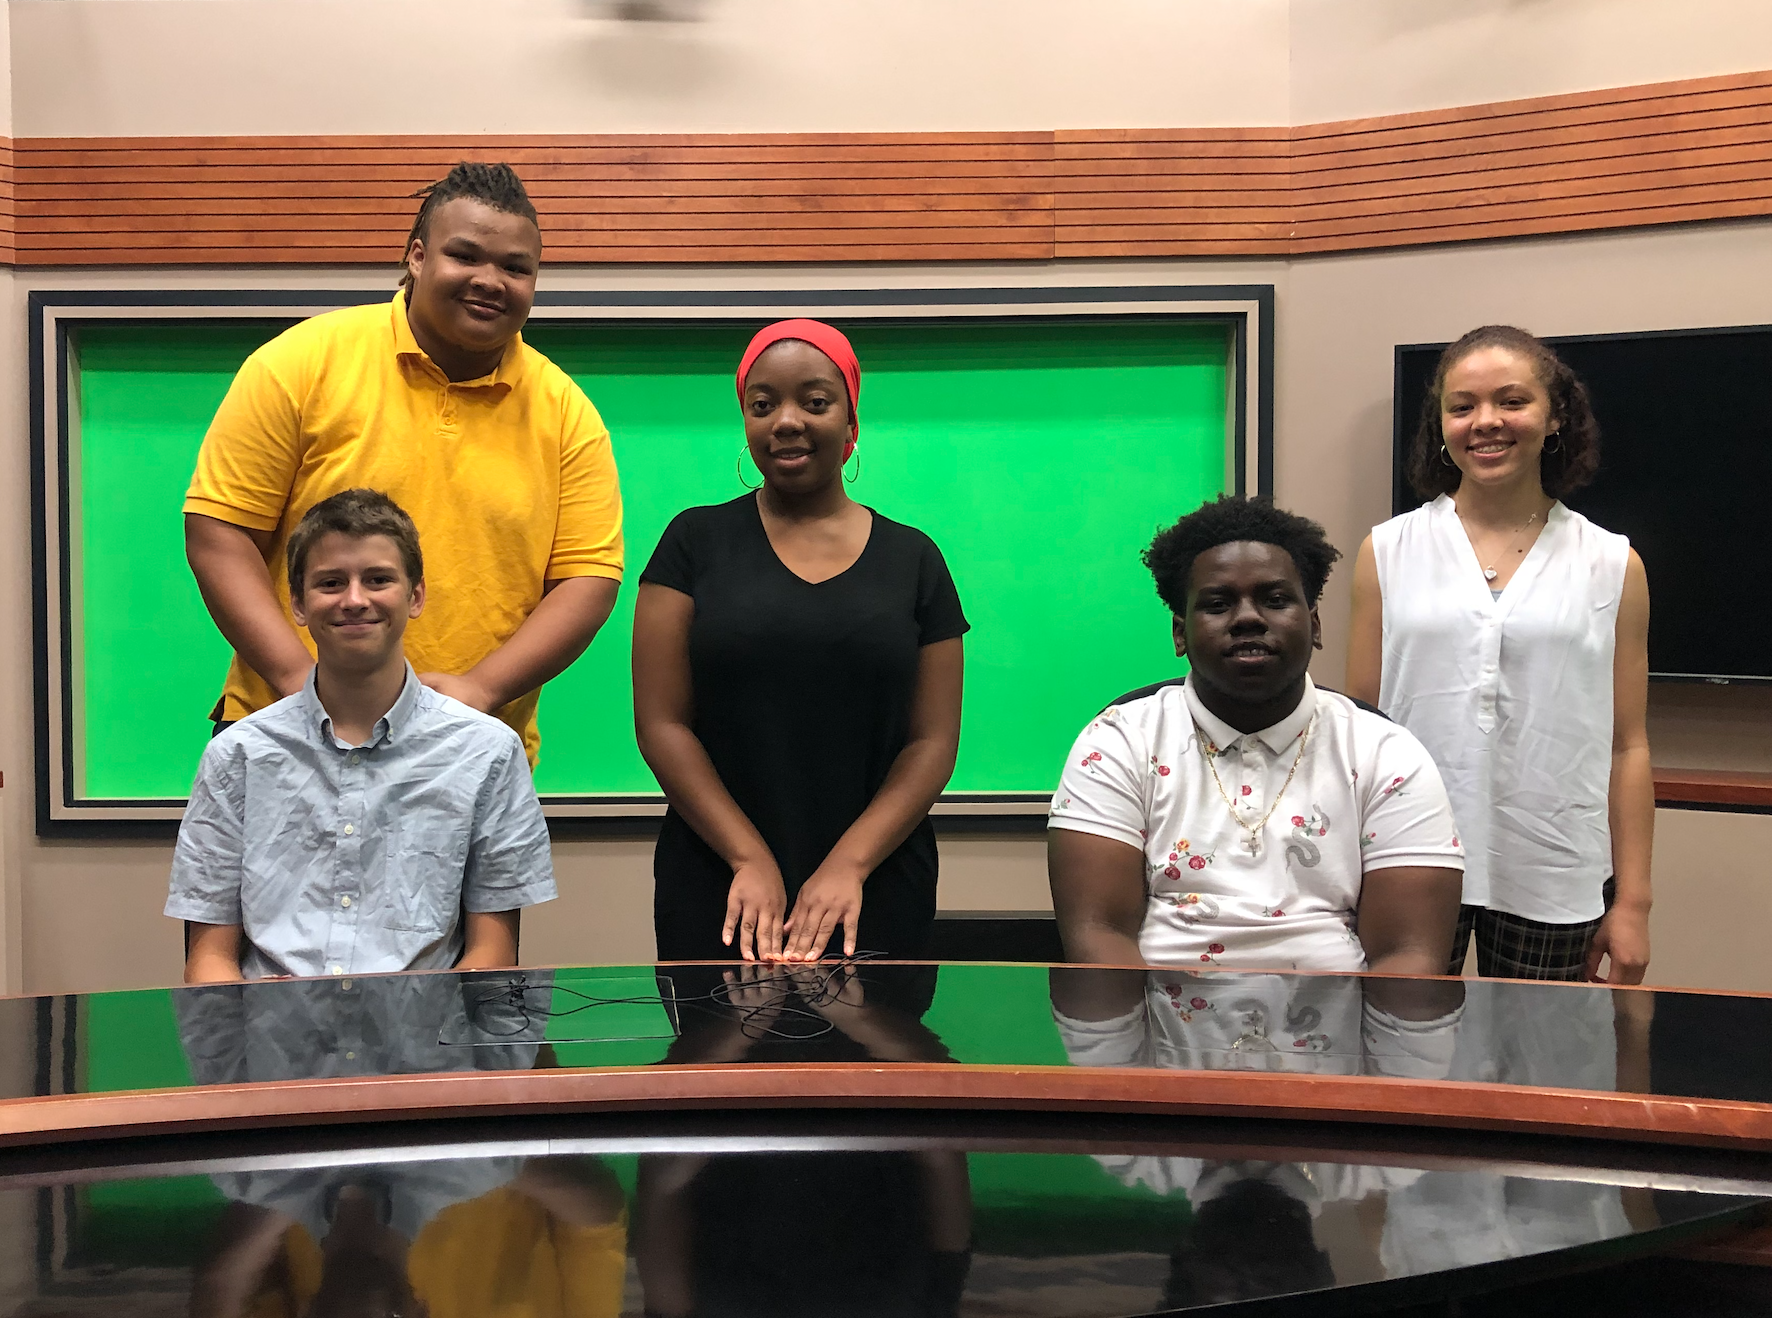 Journalism Team's field trip to The Richard Eaton Broadcast Center at the University of Maryland, home to UMTV and the Maryland Capital News Service (CNS) Broadcast Bureau. From left to right: Otto, Justice, Katia, Justin, and Sonia.